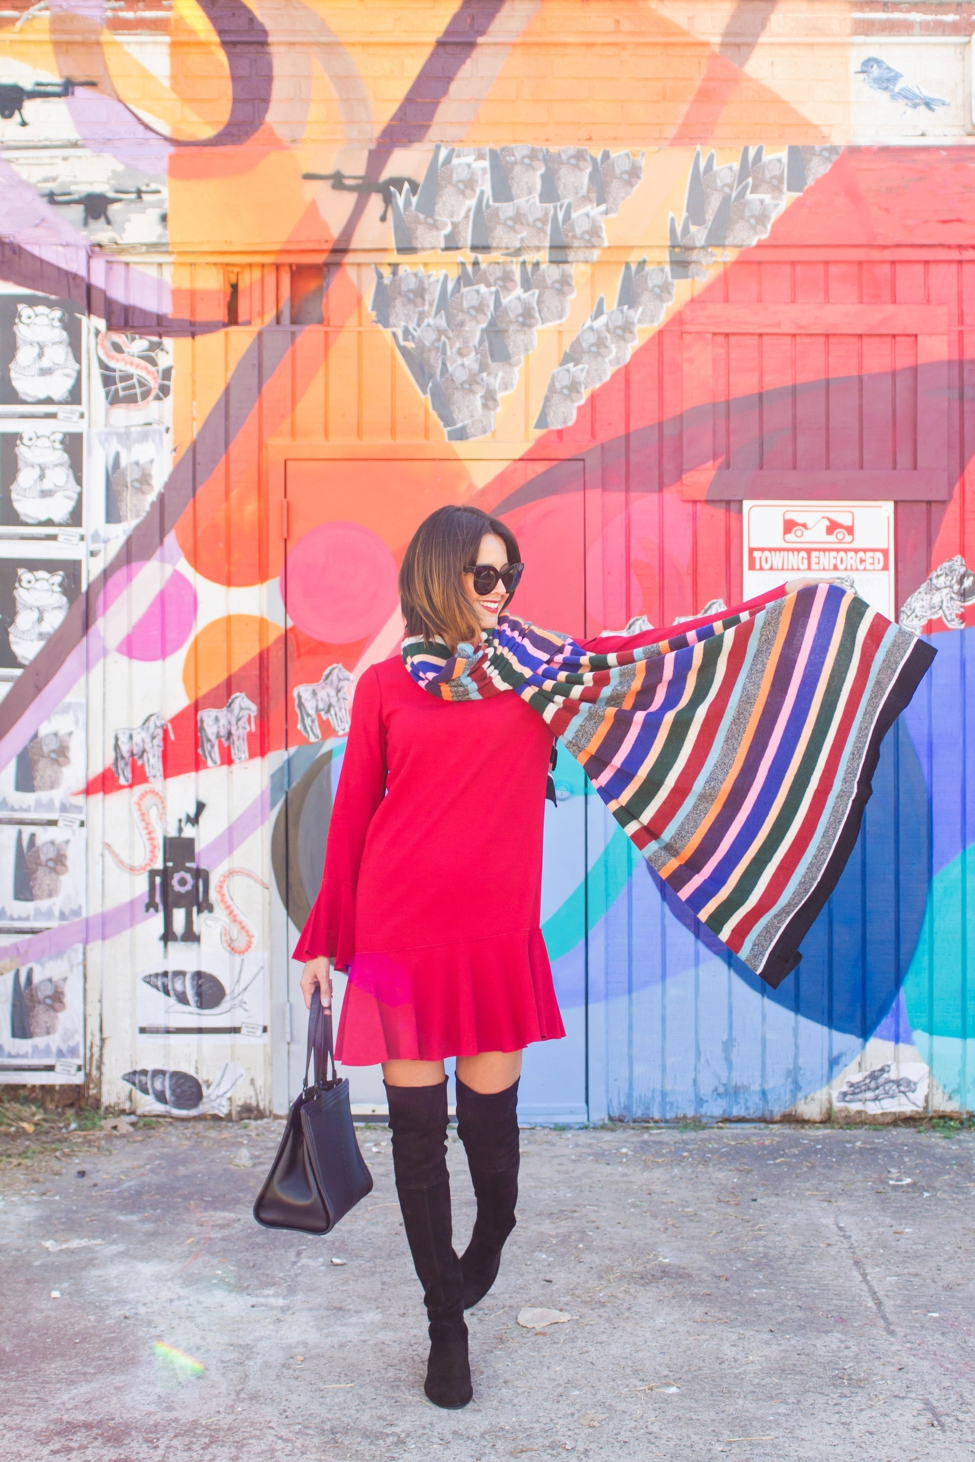 wear-where-well-theory-bell-sleeve-red-dress-colorful-striped-scarf_0010